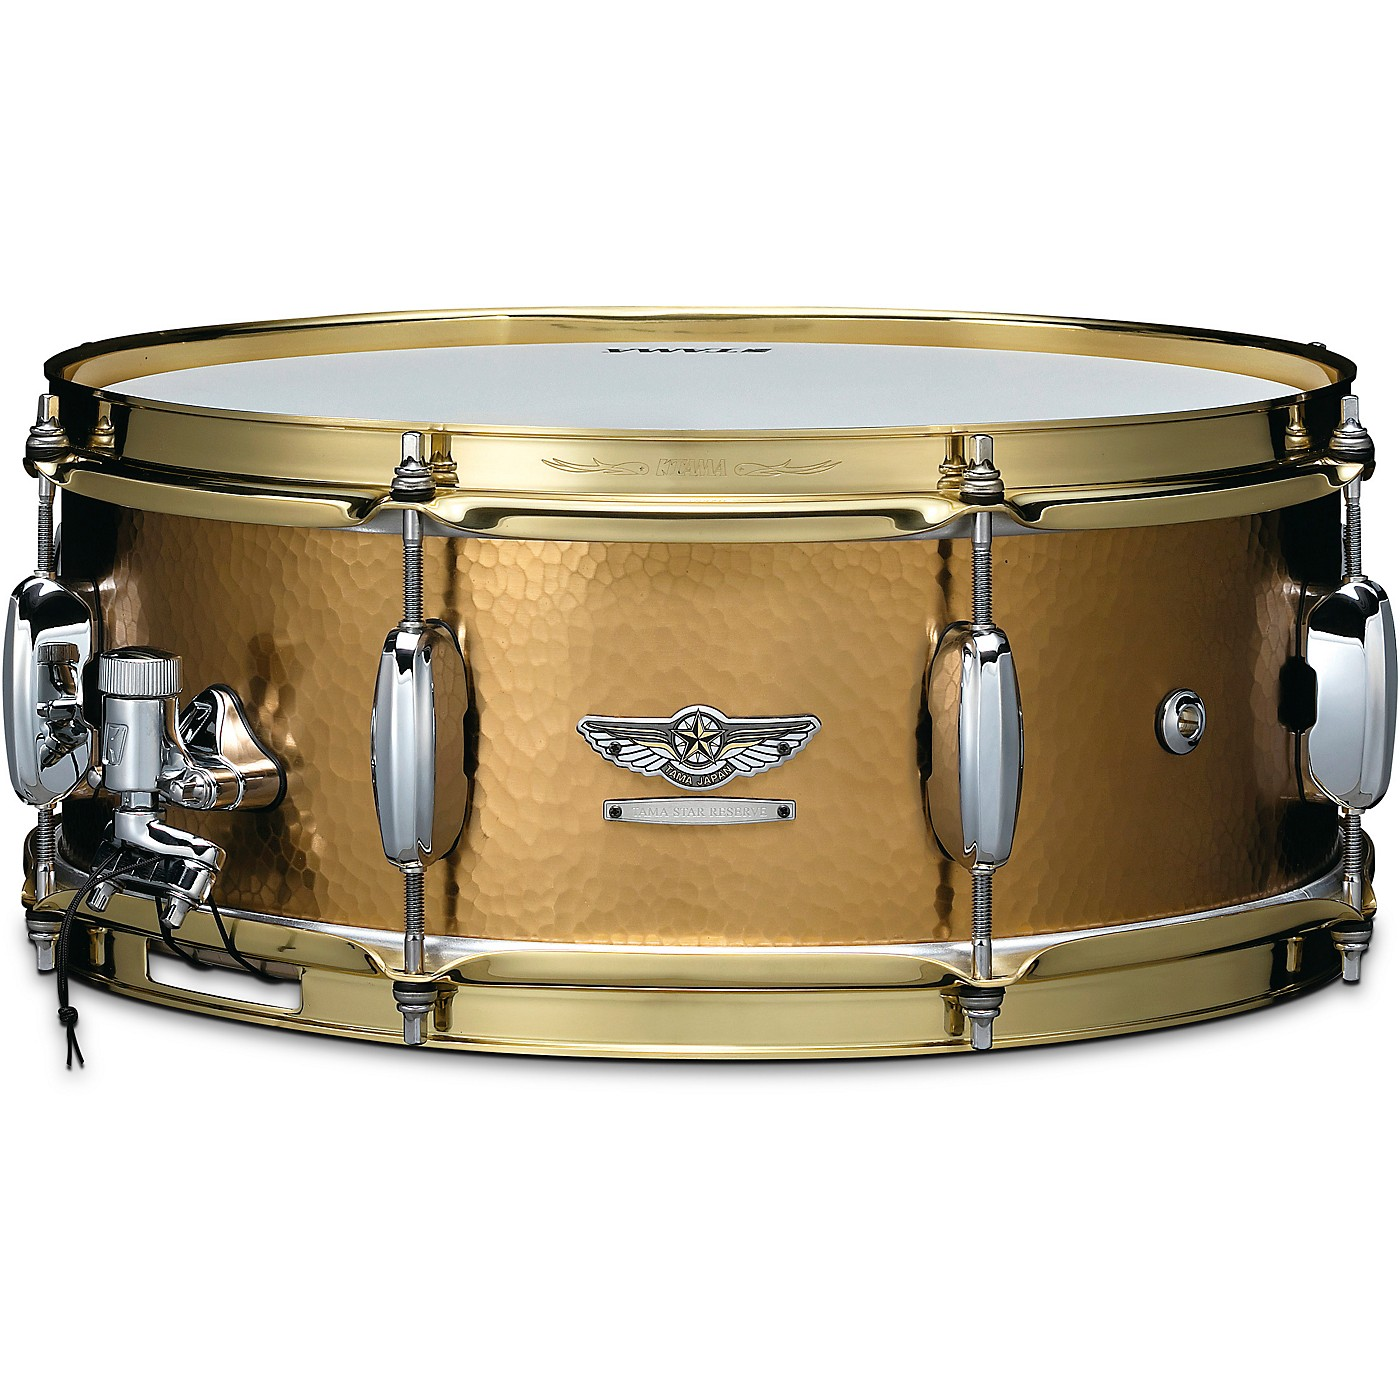 TAMA STAR Reserve Hand Hammered Brass Snare Drum thumbnail